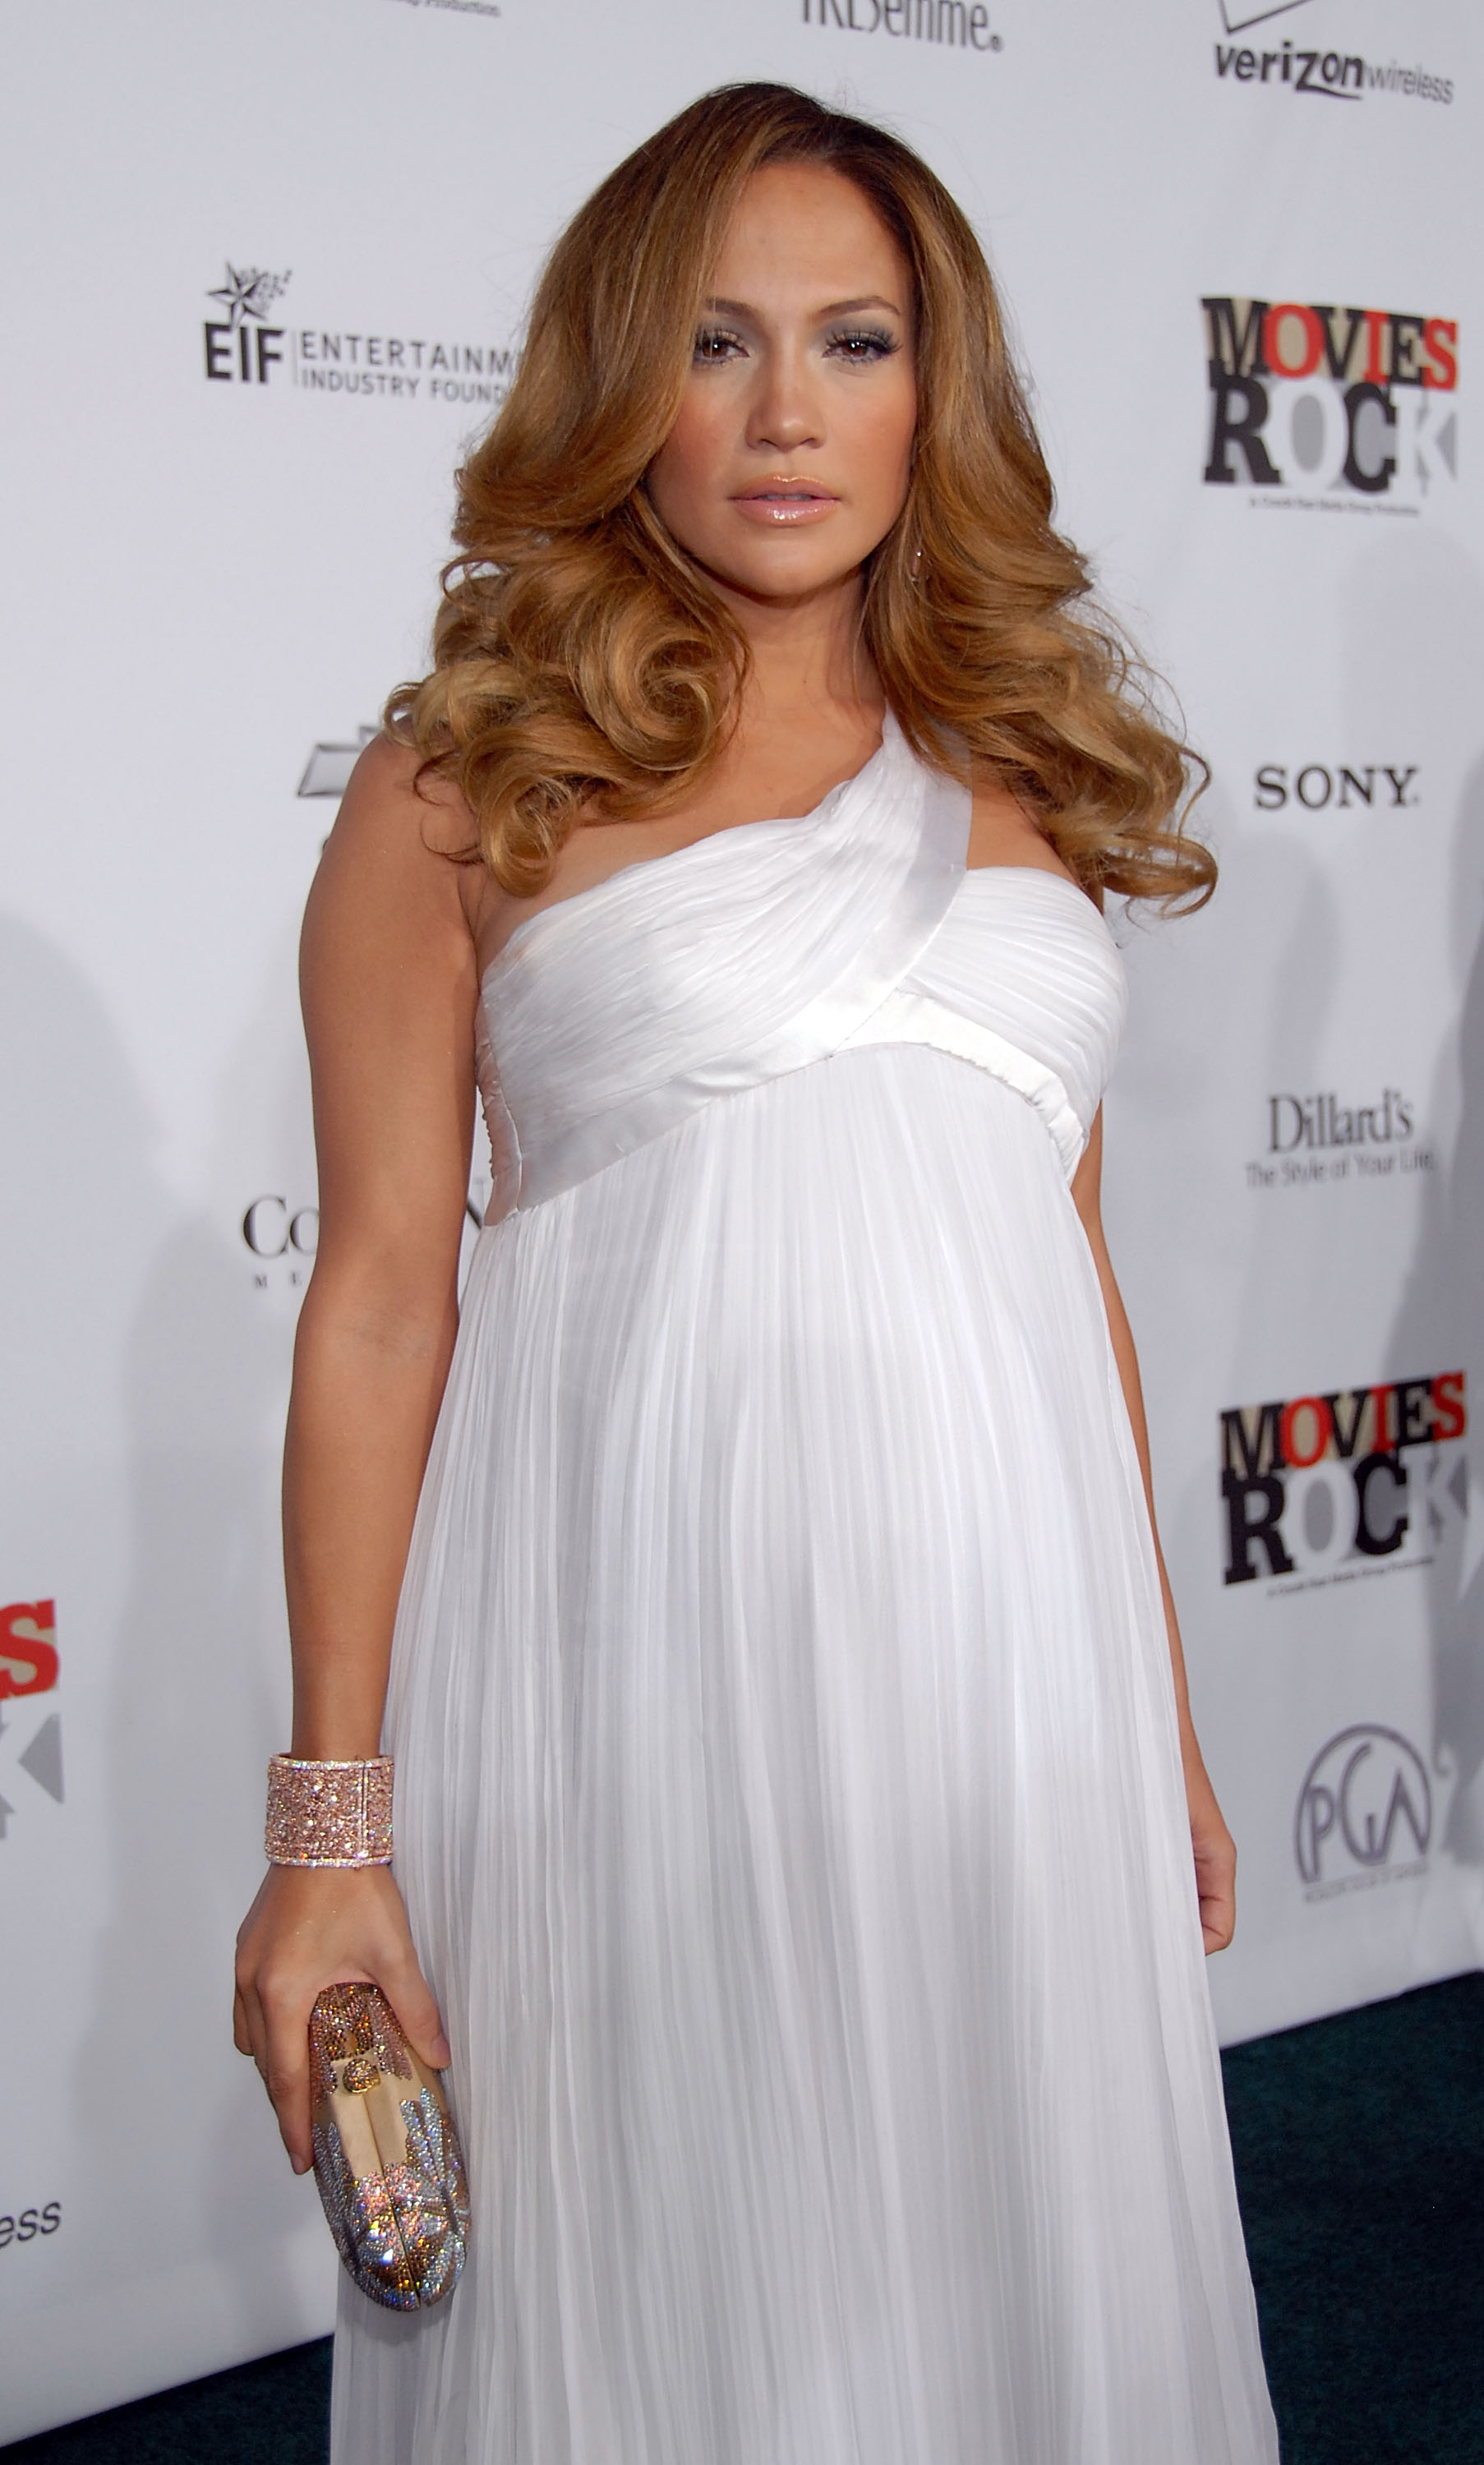 84381_Celebutopia-Jennifer_Lopez-Movies_Rock_A_Celebration_Of_Music_In_Film_in_Hollywood-09_123_905lo.jpg